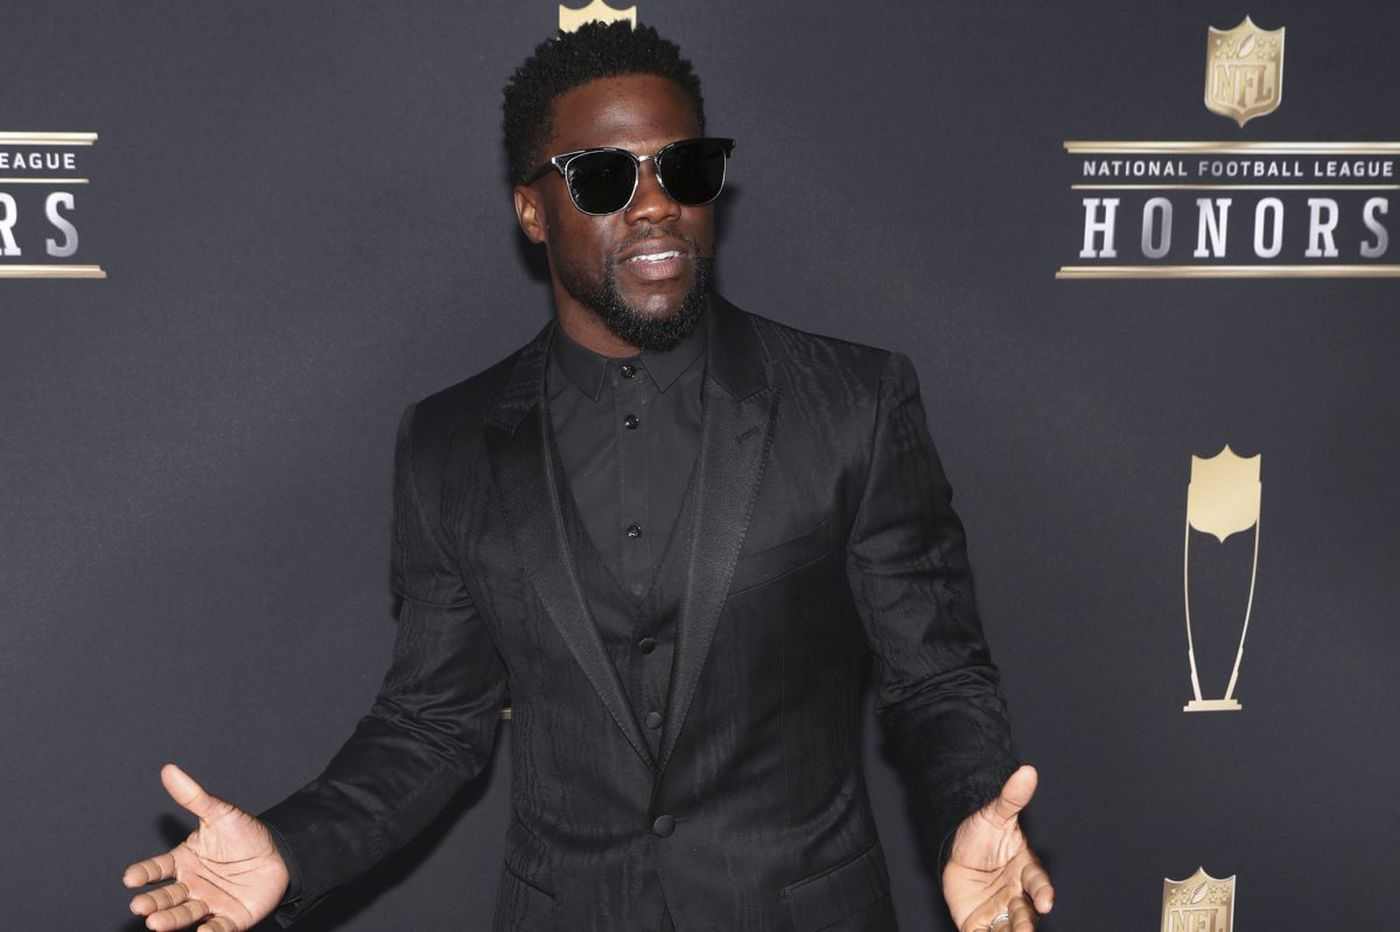 Kevin Hart tried to sneak onstage with the Lombardi Trophy after Eagles win because he was drunk